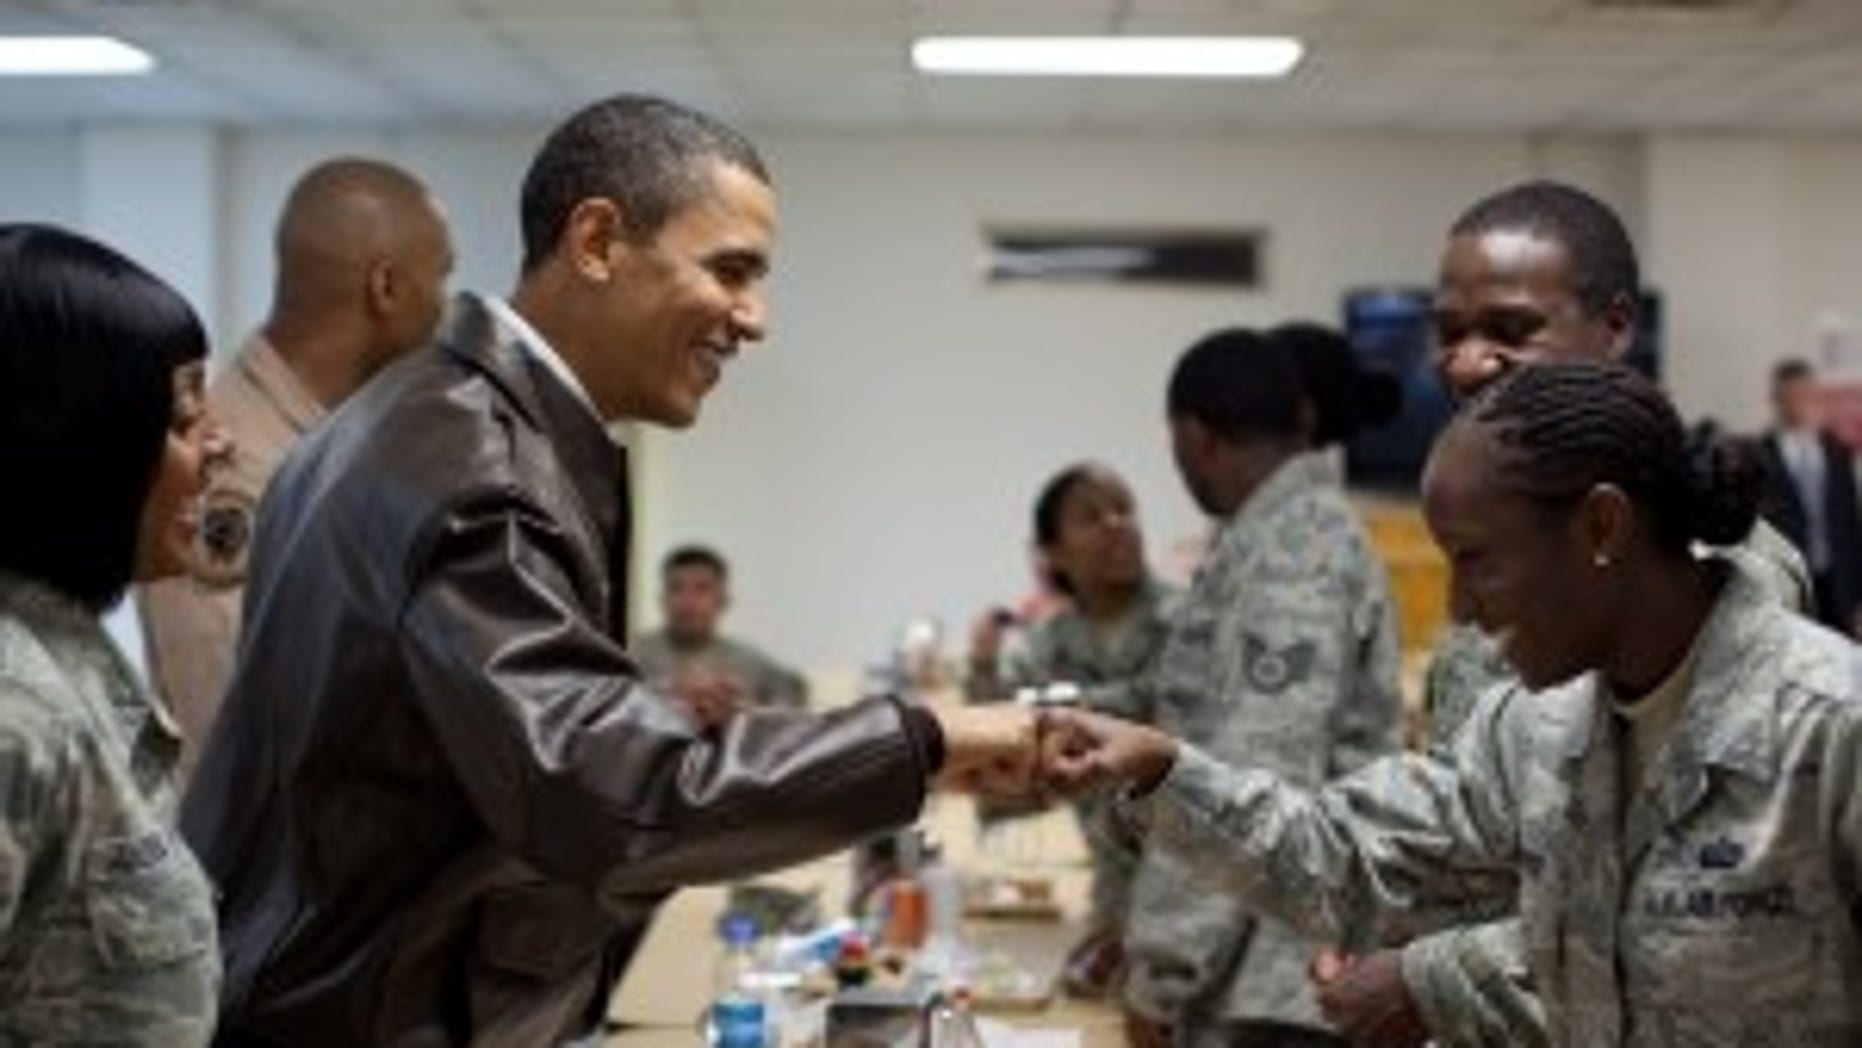 President Obama greets U.S. troops at a mess hall at Bagram Air Field. (WH Photo) To see more photos - check out the slideshow at the bottom of this post.